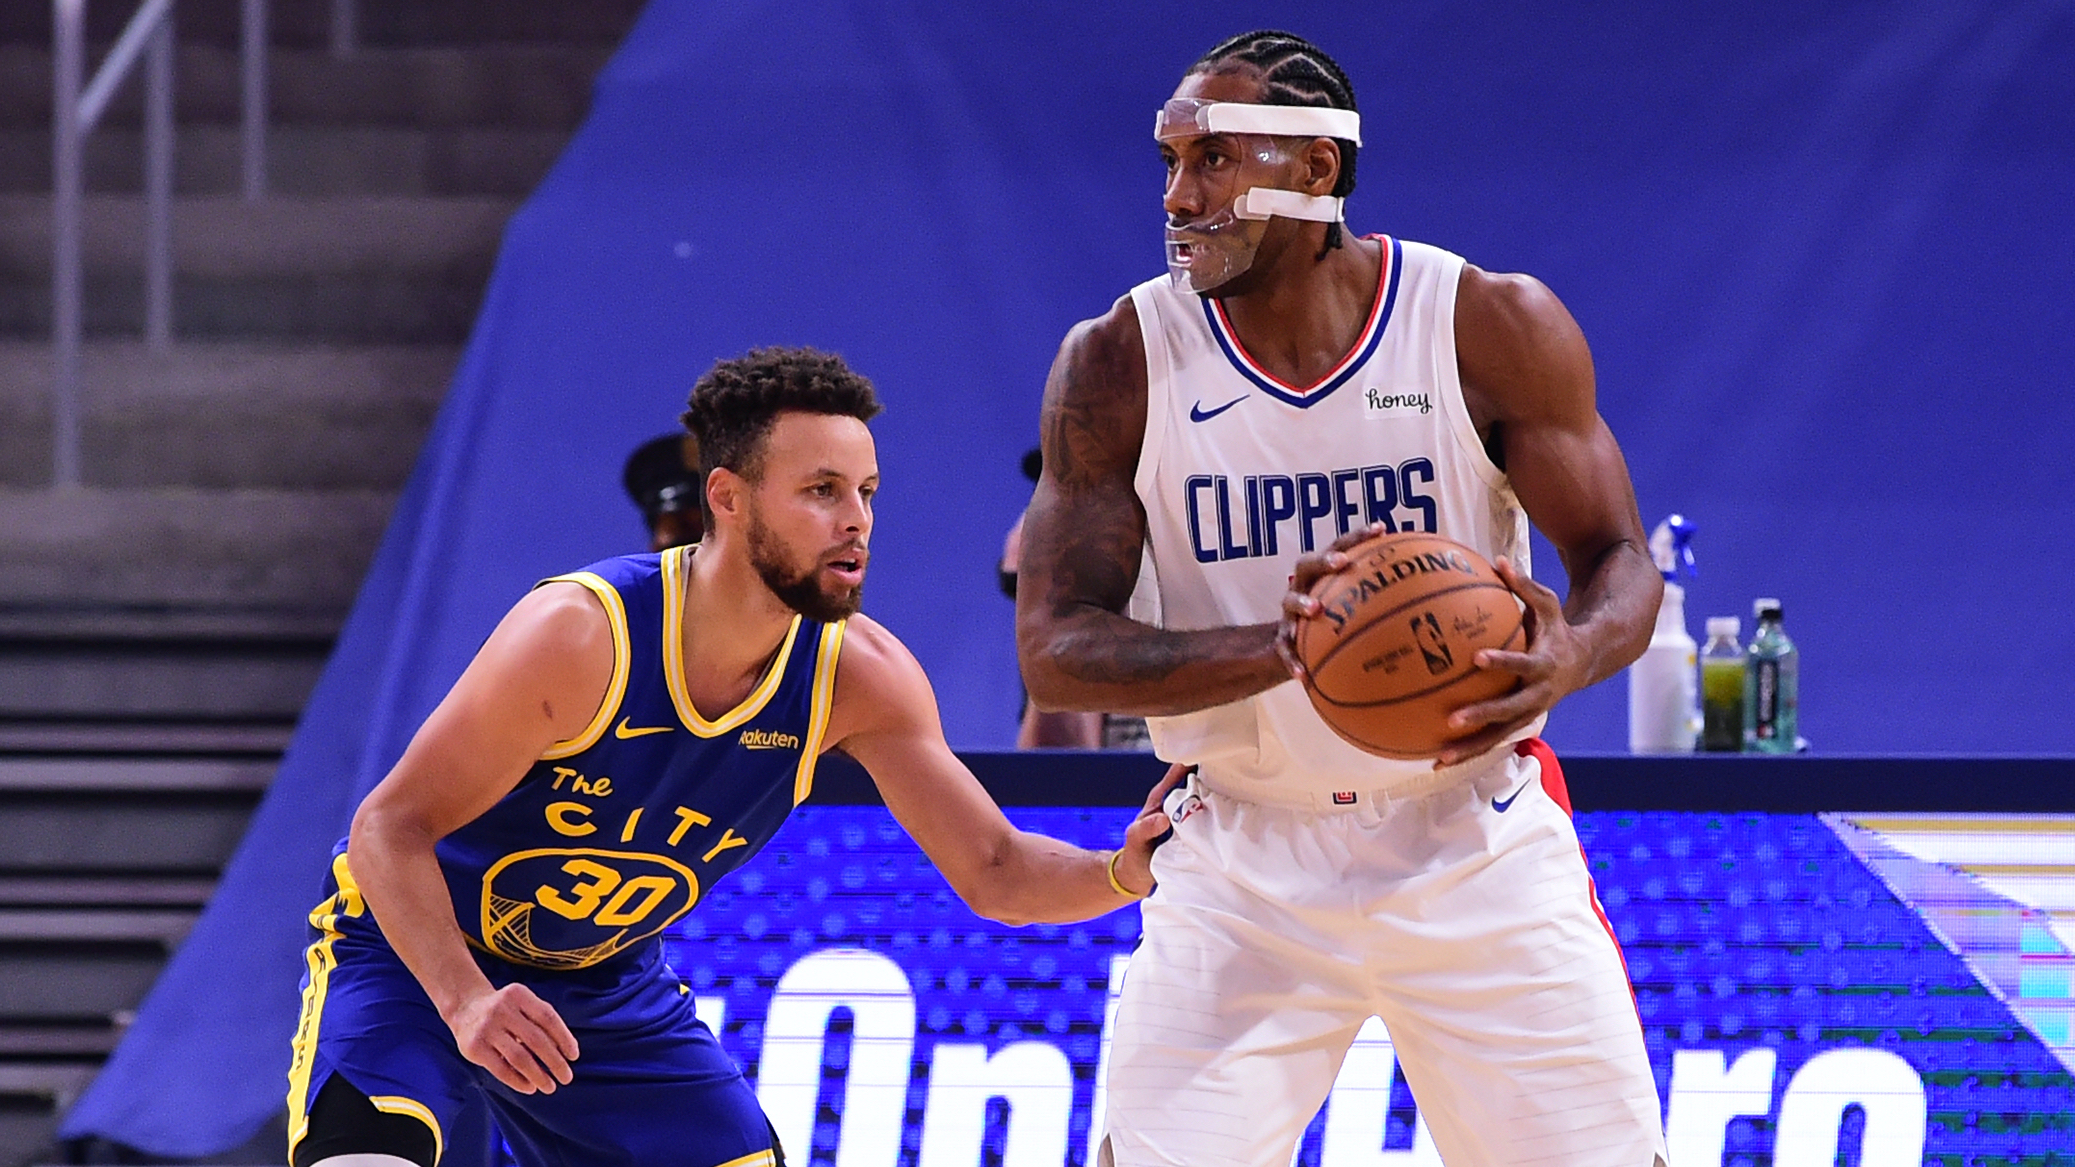 Clippers vs. Warriors Odds & Pick: Expect Full Effort From Kawhi & PG (Friday, Jan. 8) article feature image